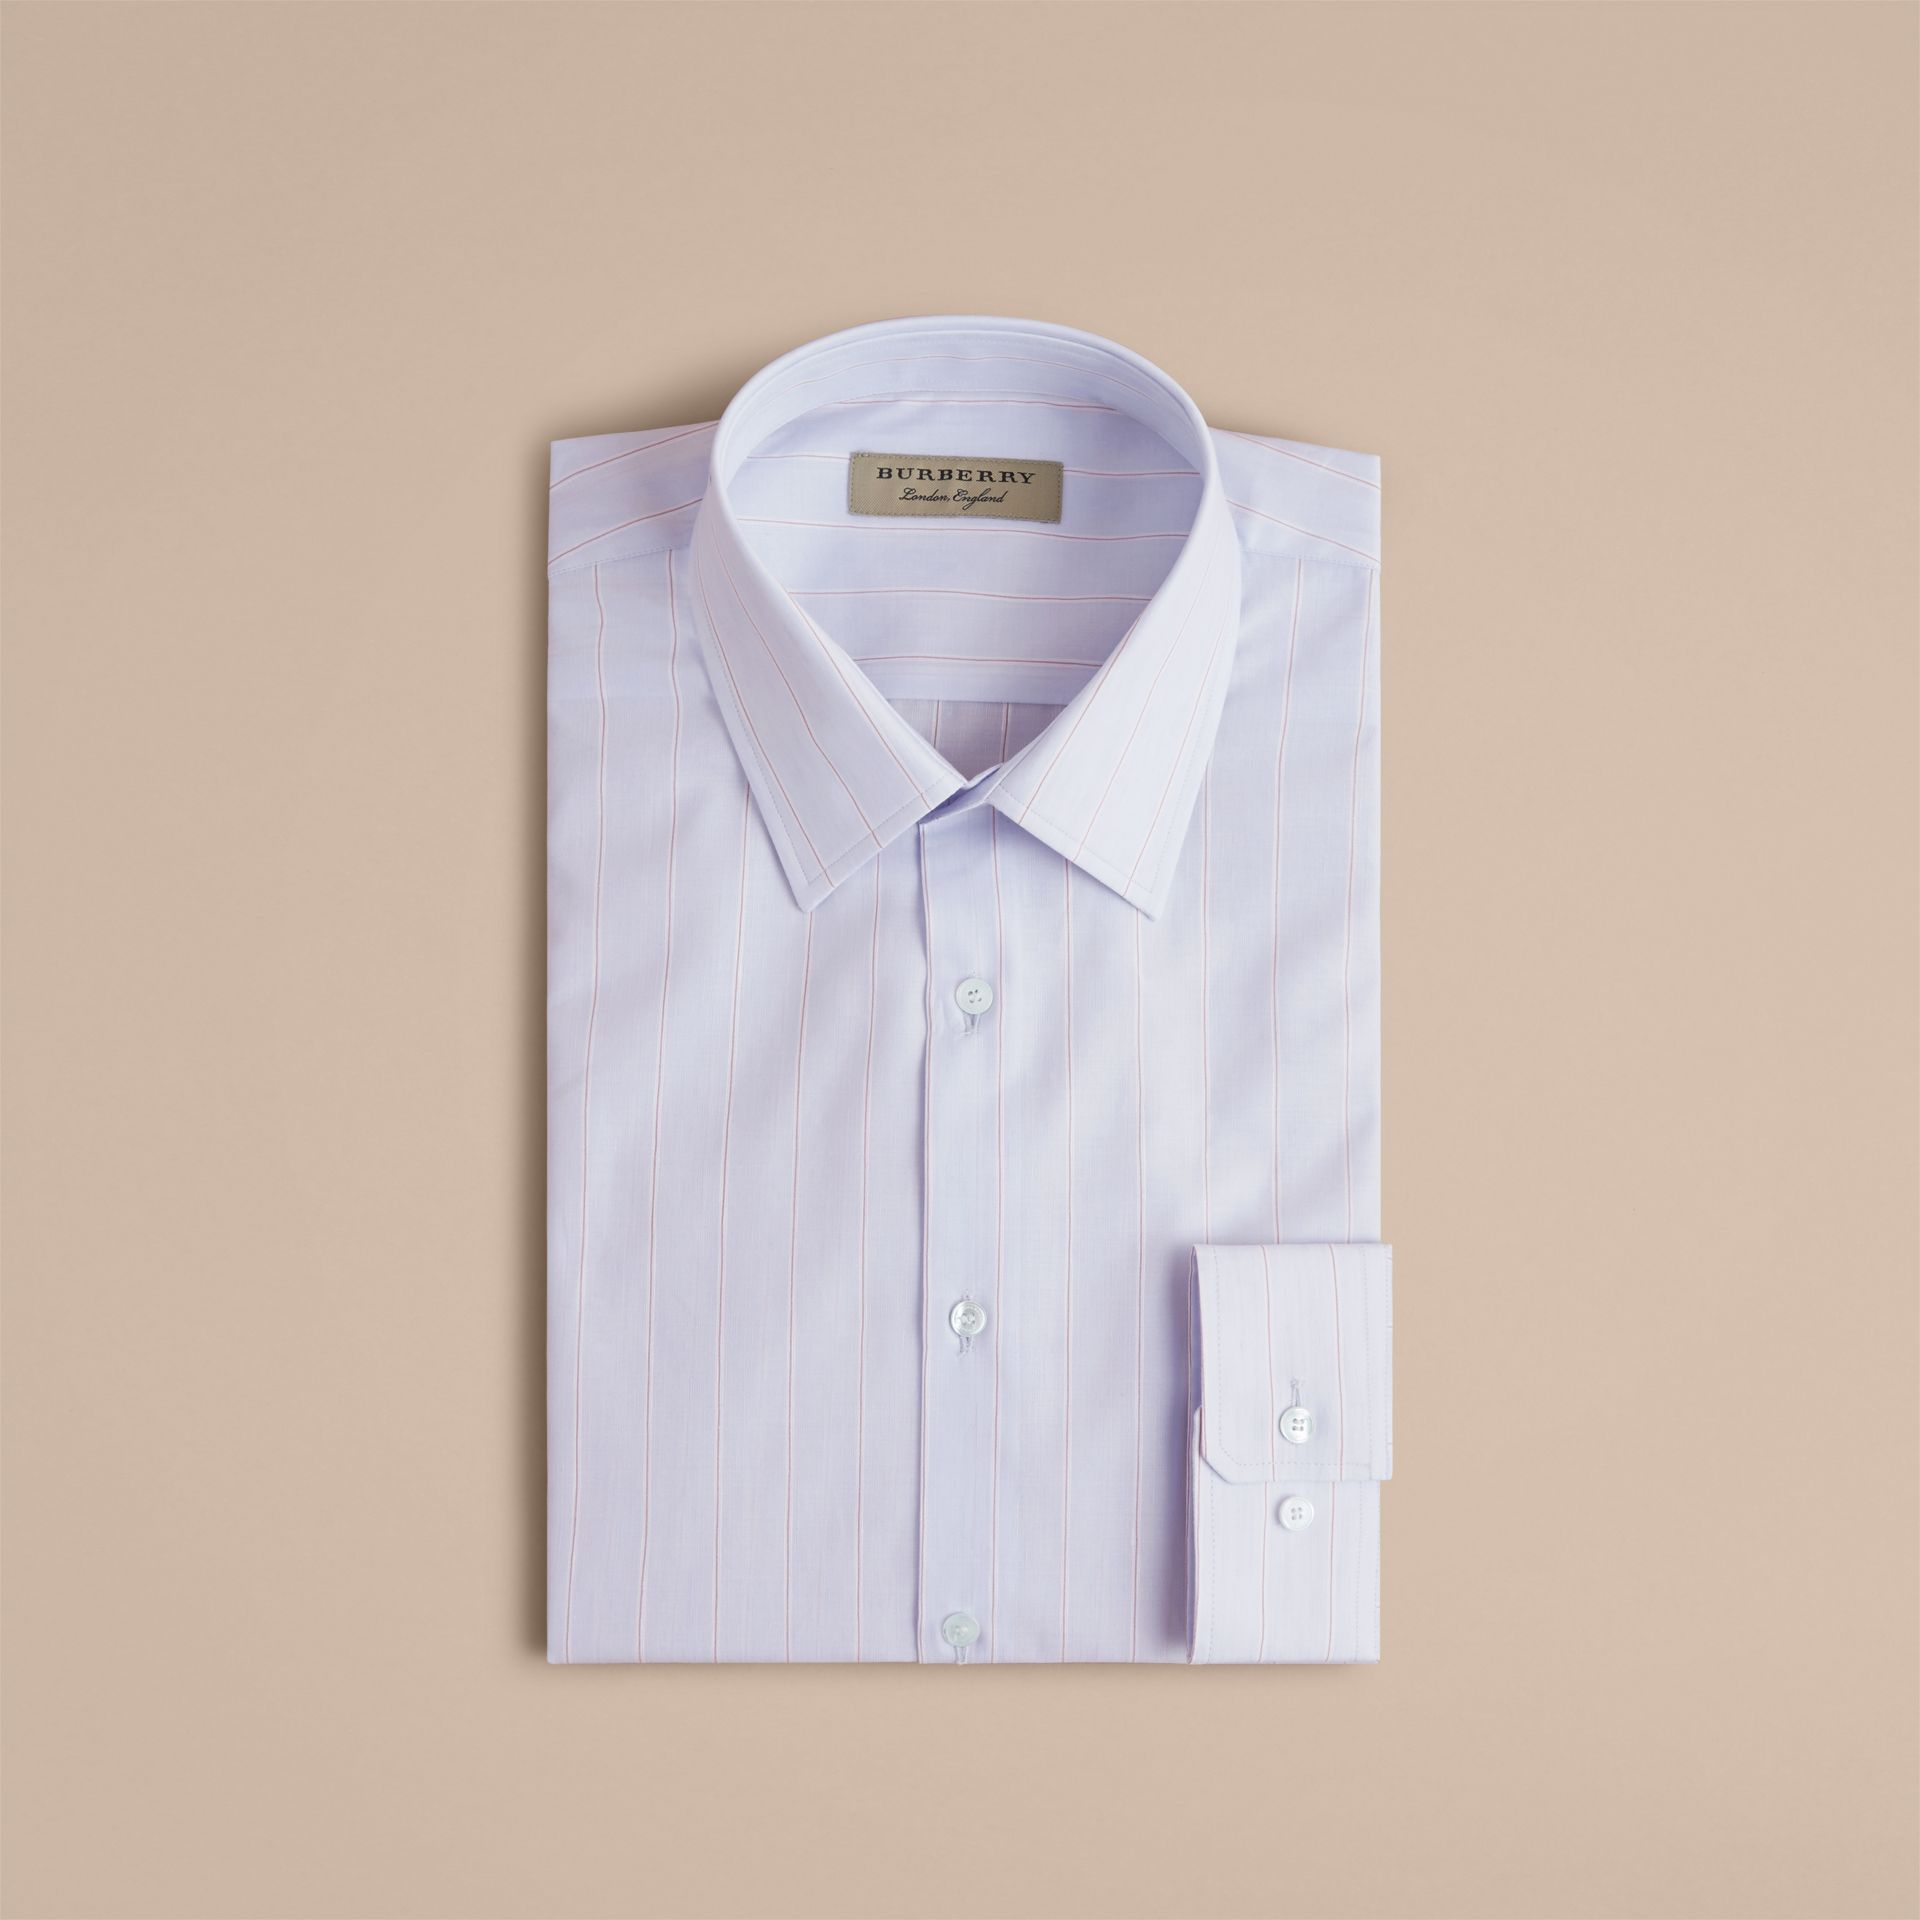 Modern Fit Cotton Linen Striped Shirt in Light Blue - Men | Burberry - gallery image 4